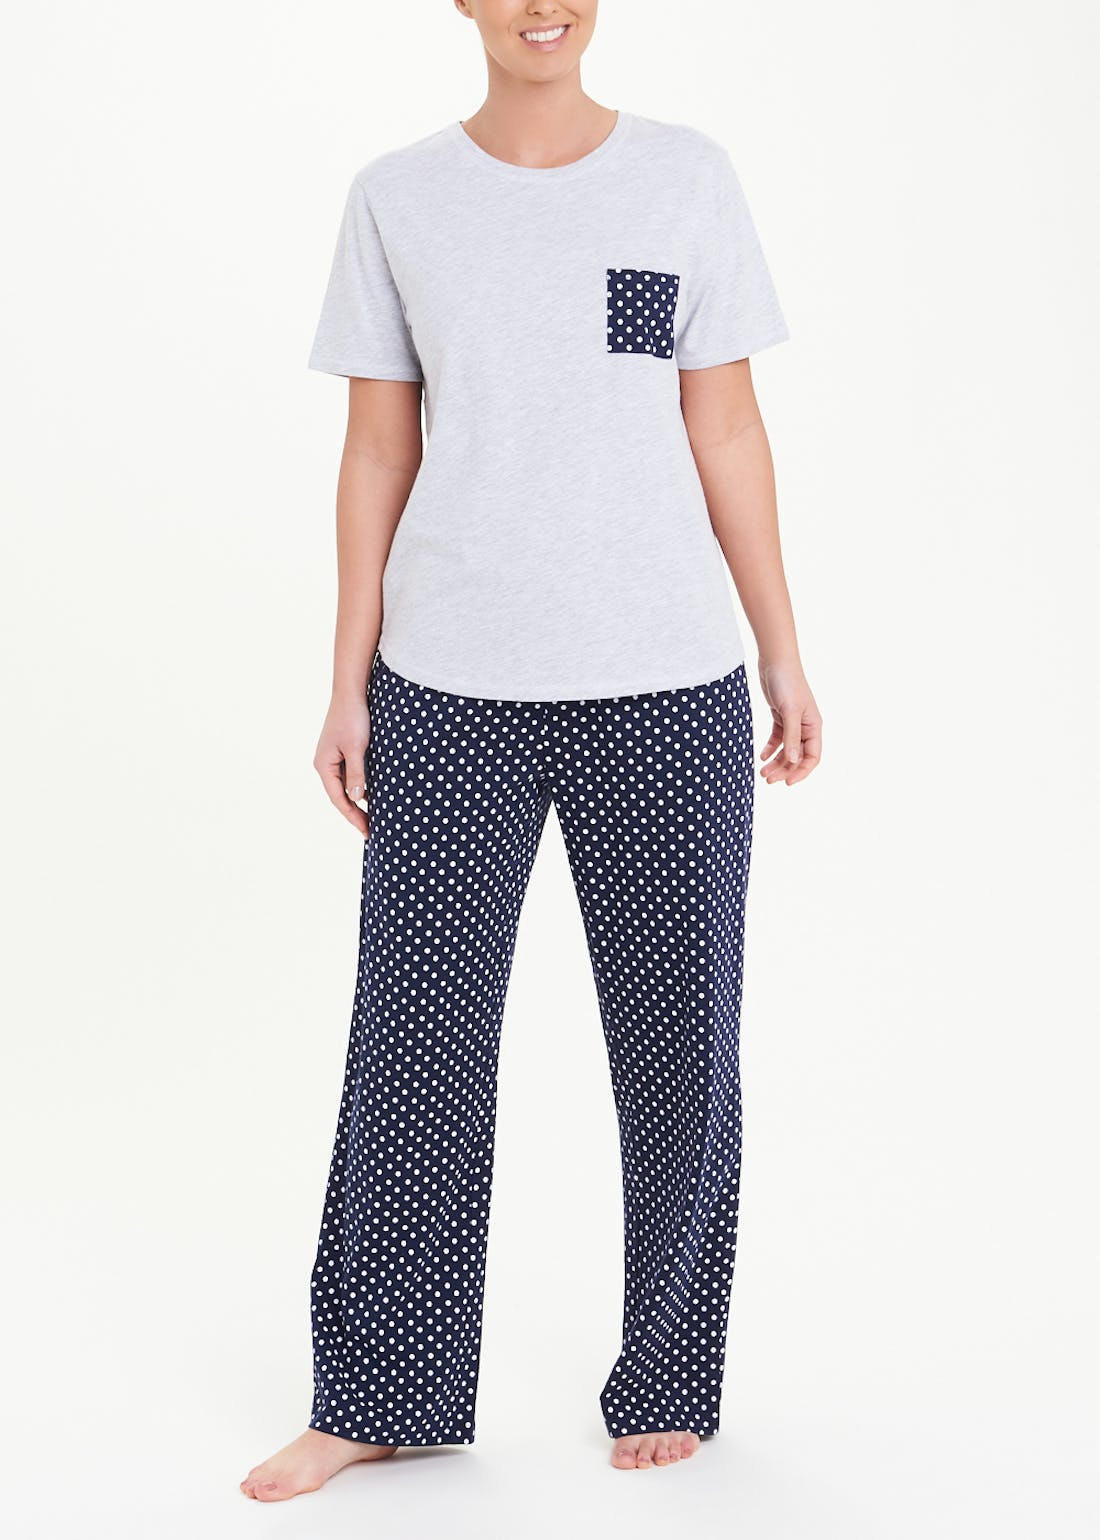 Anchor Wide Leg Pyjama Set